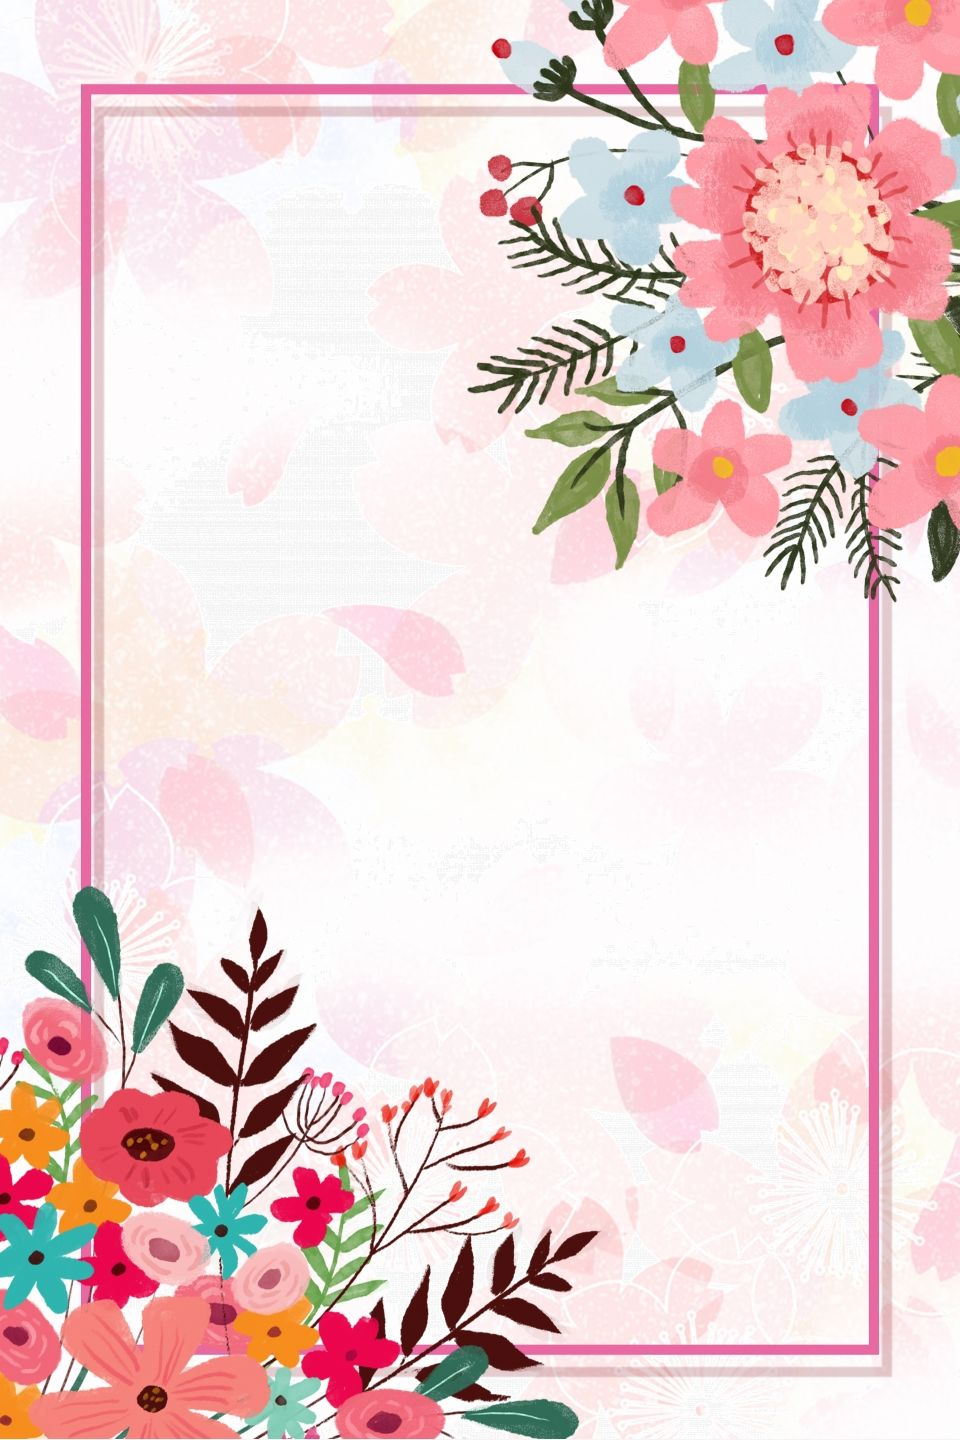 Flower Border Poster Background in 2020 Floral